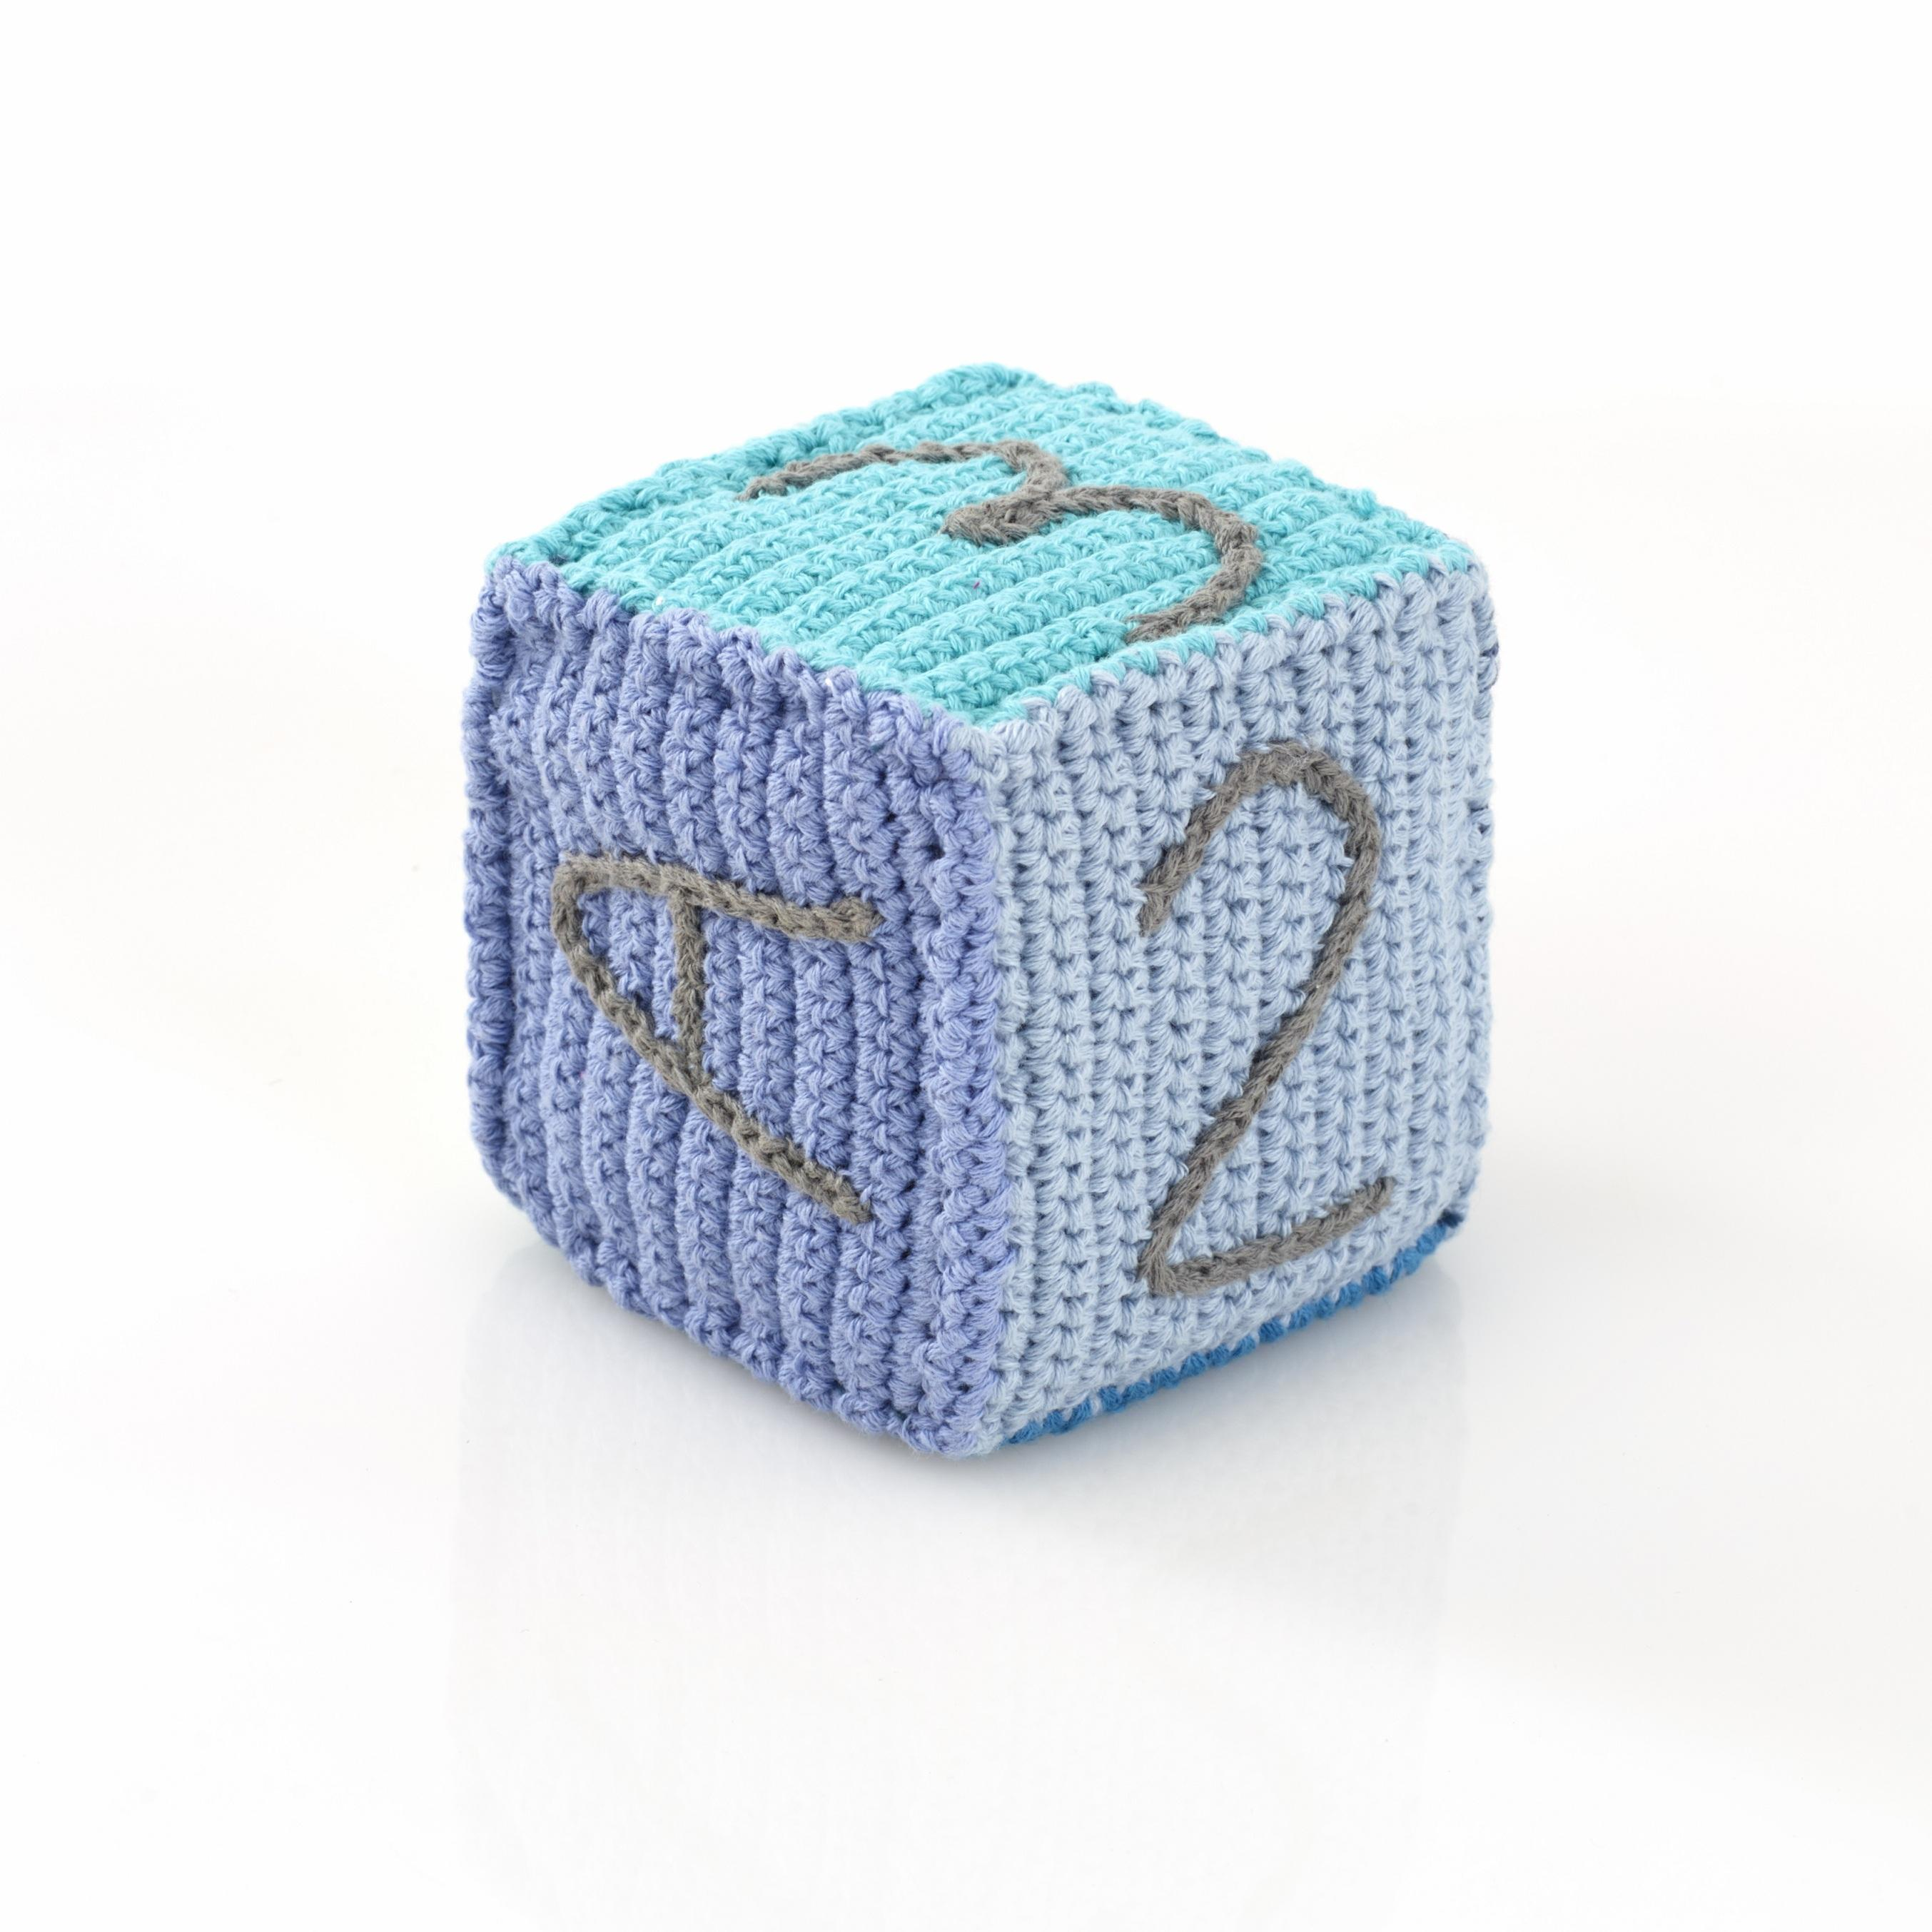 Baby Toys : Crochet Toy Building Block for Babies, blue